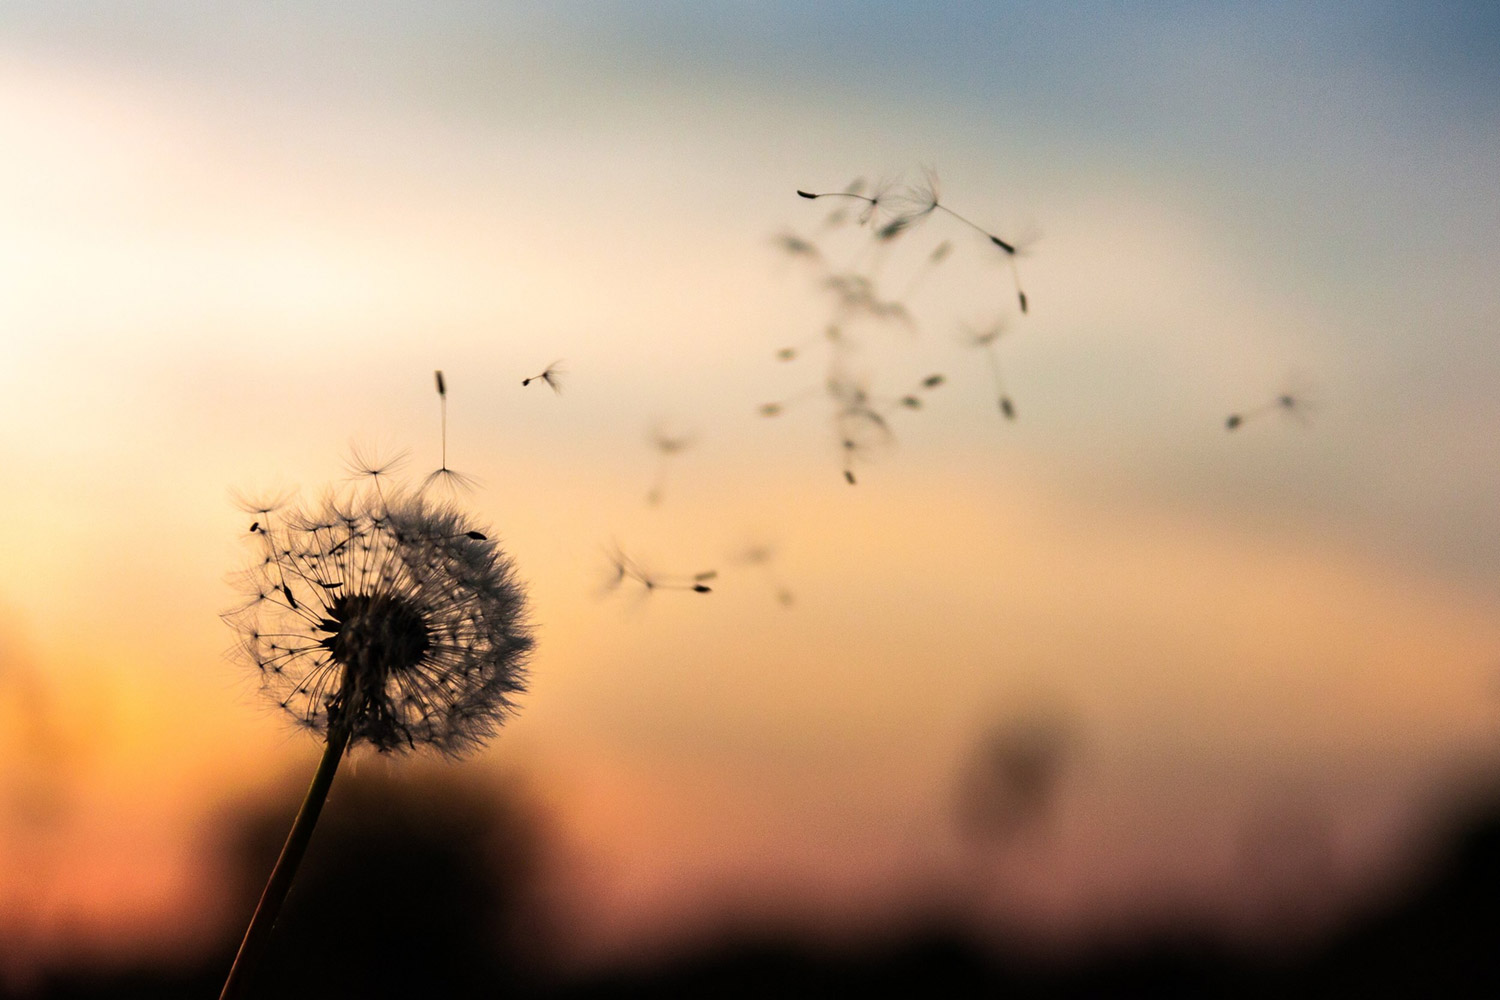 A dandelion puff against the sunset, several seeds blowing away